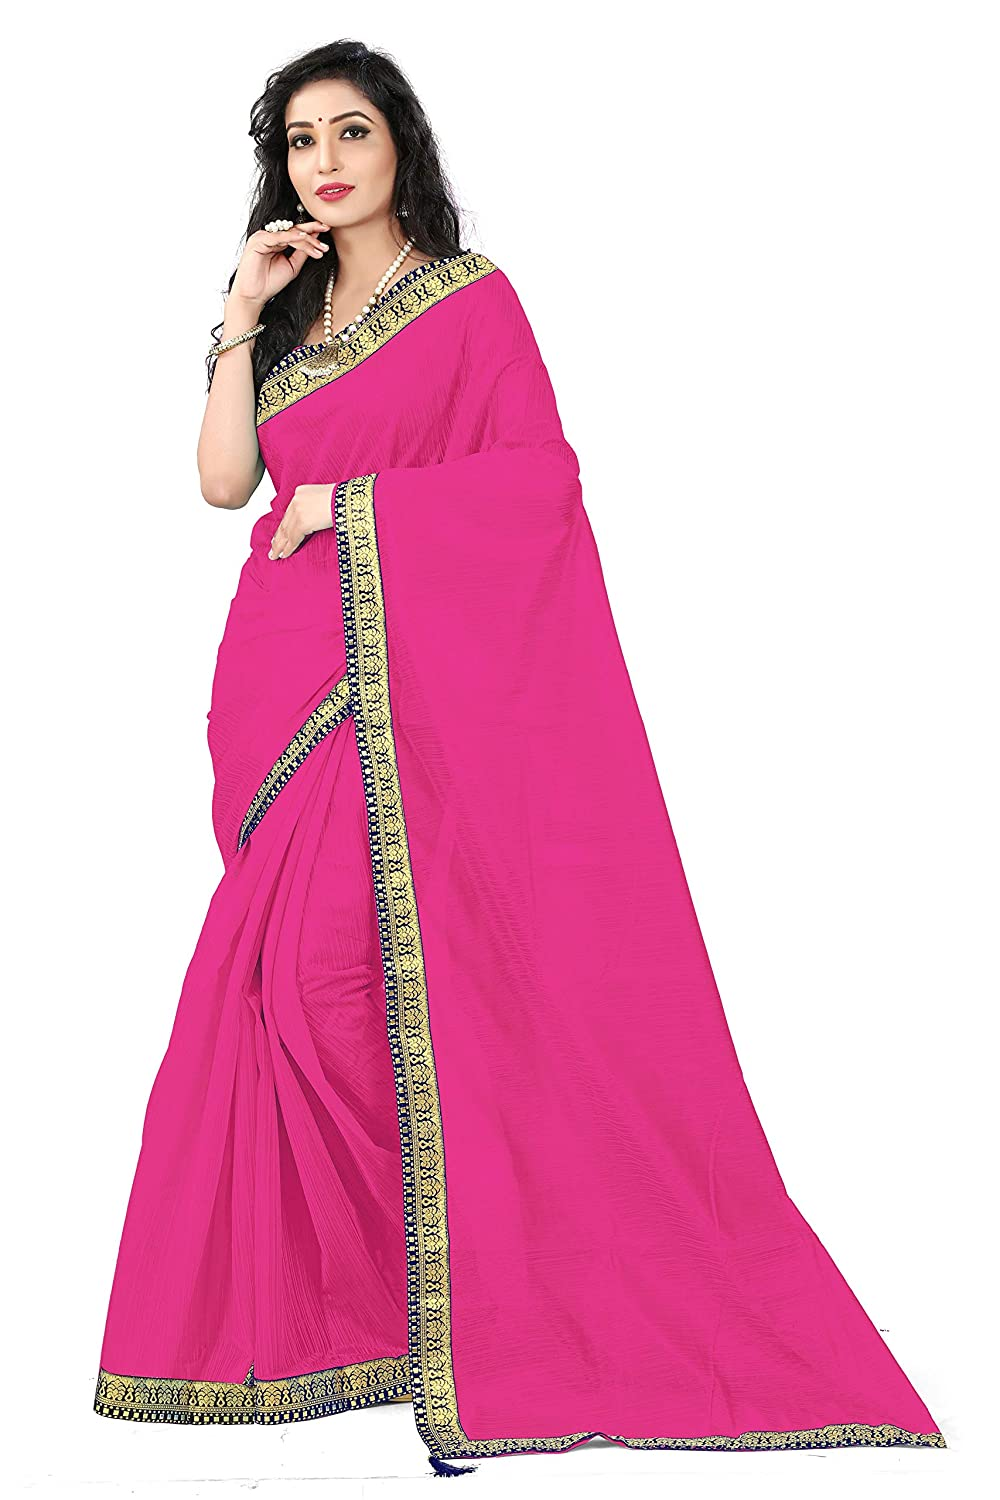 Florence Women's Pink Art Silk Solid Printed Saree With Un-Stitched Blouse(FL-12442_Free Size)